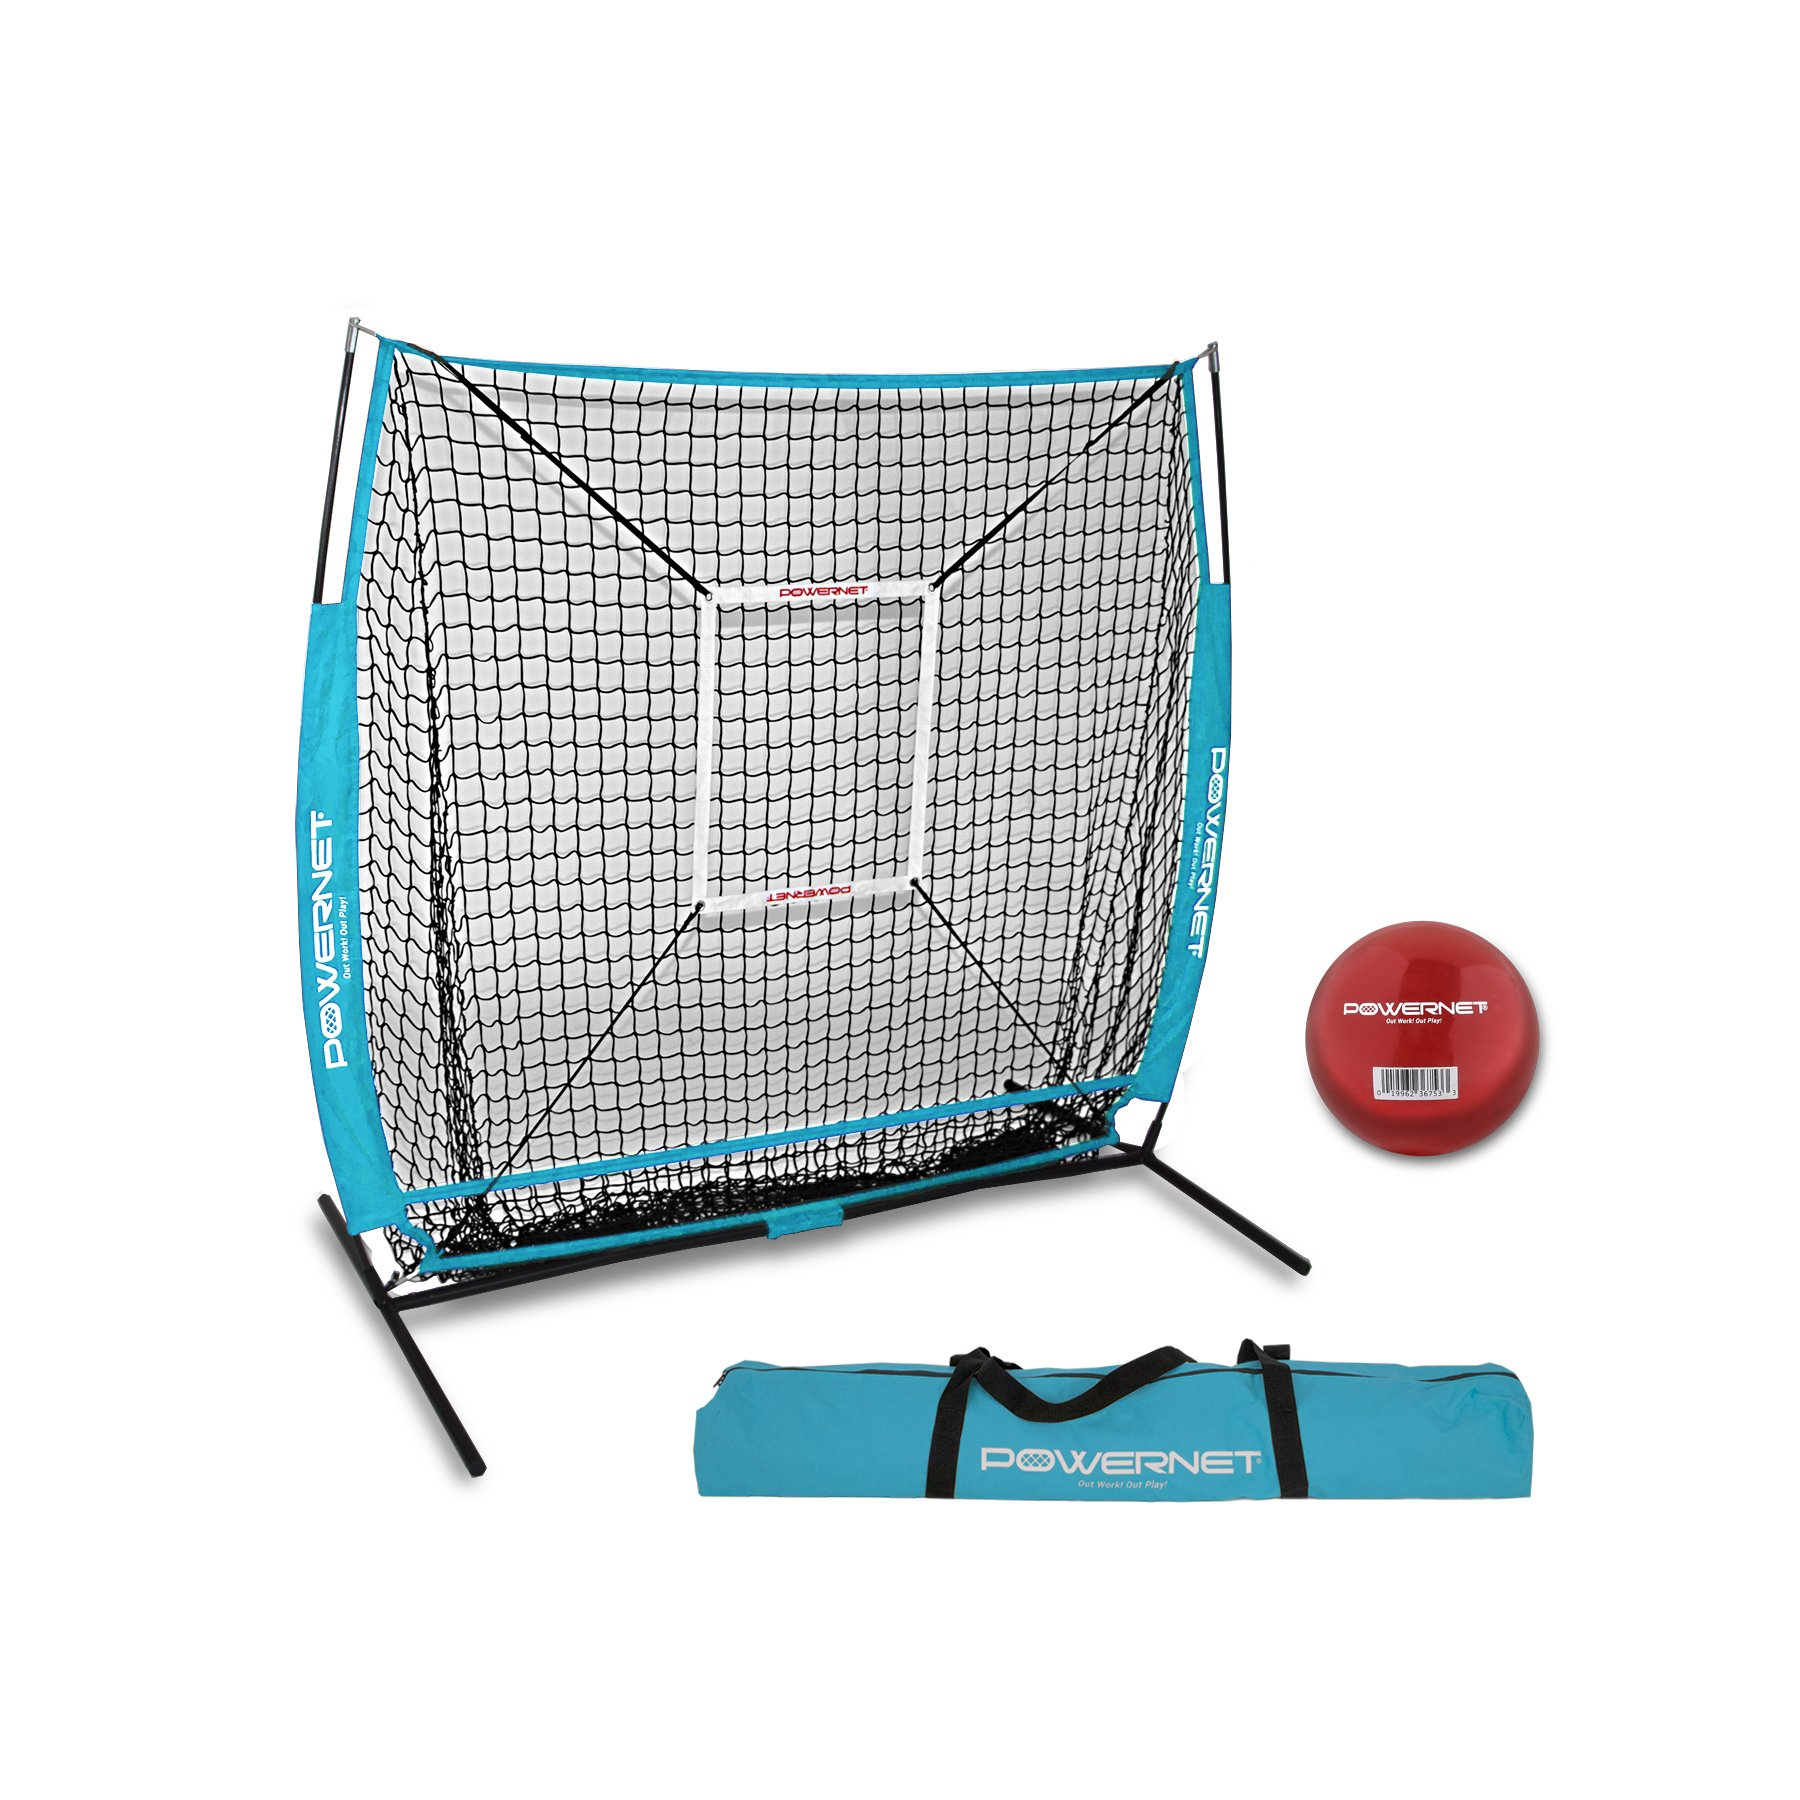 PowerNet 5x5 Practice Net + Strike Zone + Weighted Training Ball Bundle (Sky Blue) | Baseball Softball Coaching Aid | Compact Lightweight Ultra Portable | Team Color | Batting Screen by PowerNet